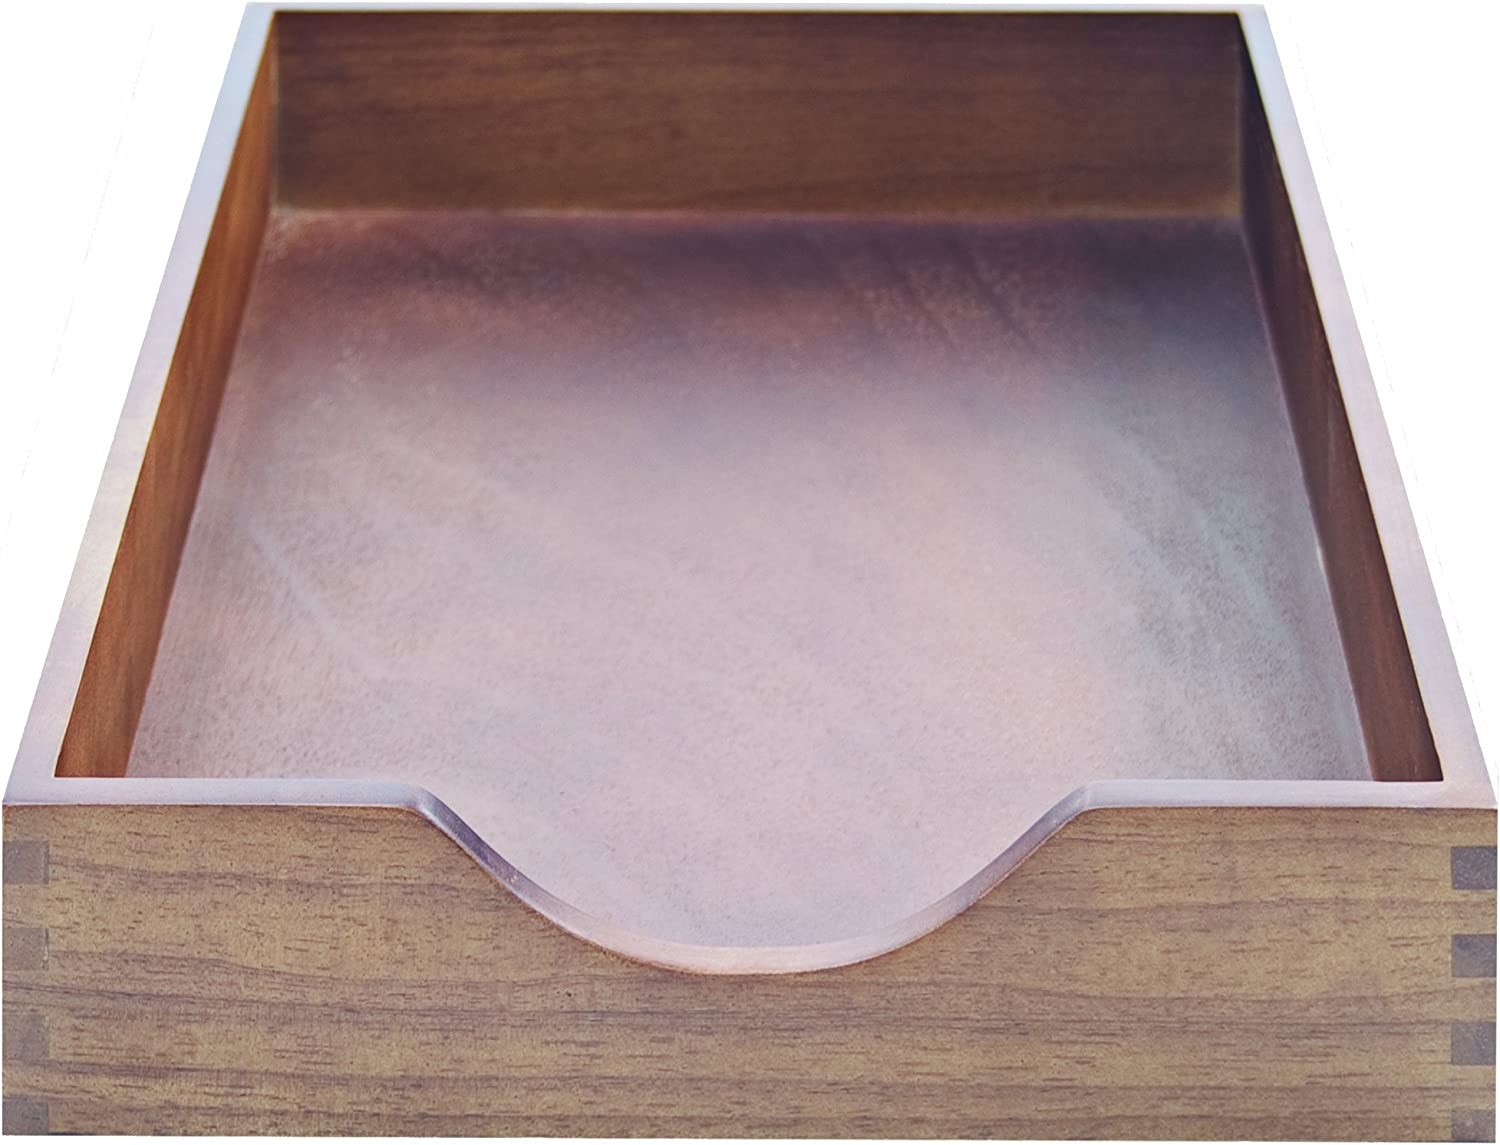 Carver Hardwood Stackable Desk Tray, Letter Size, 13.5 x 11 x 2.75 Inches, Walnut Finish (CW07212)